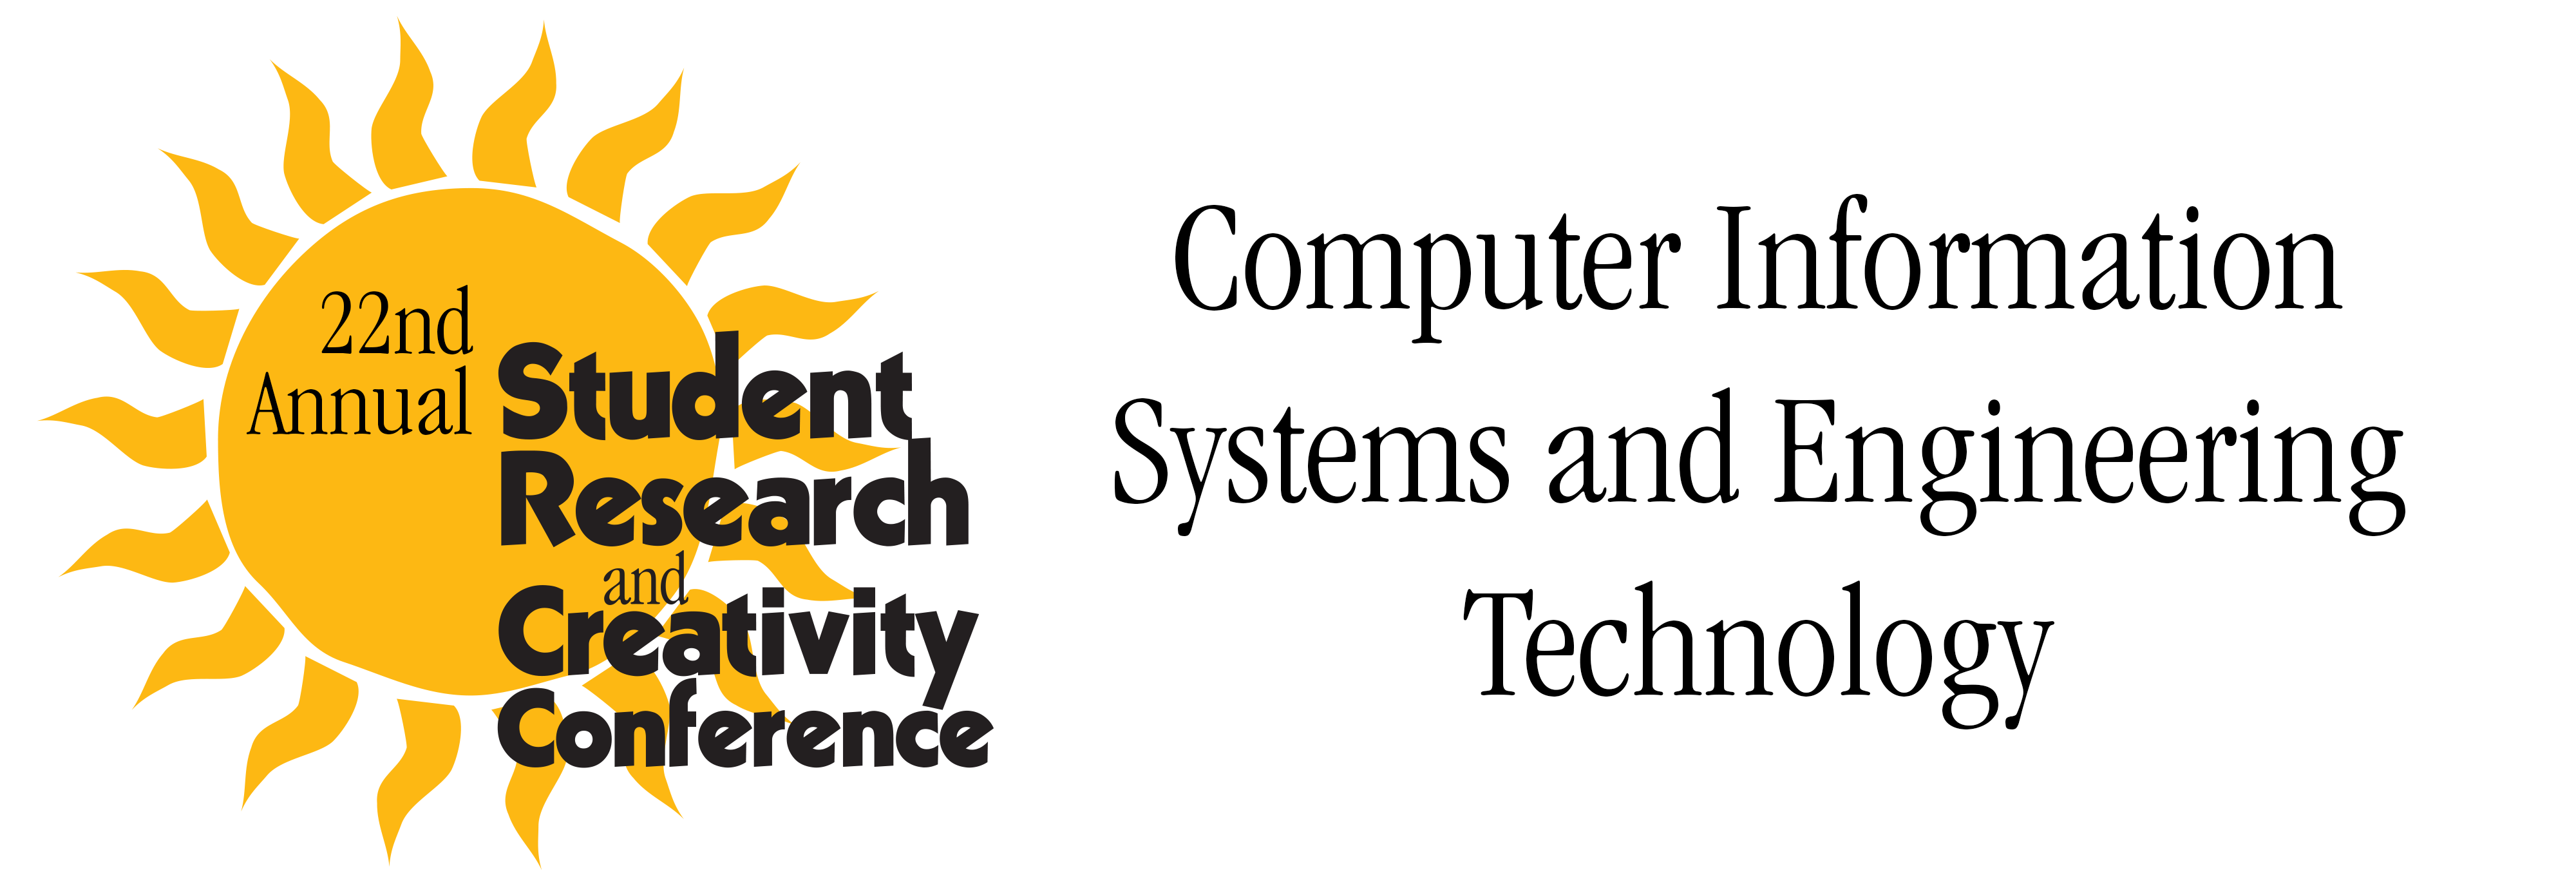 Computer Information Systems and Engineering Technology